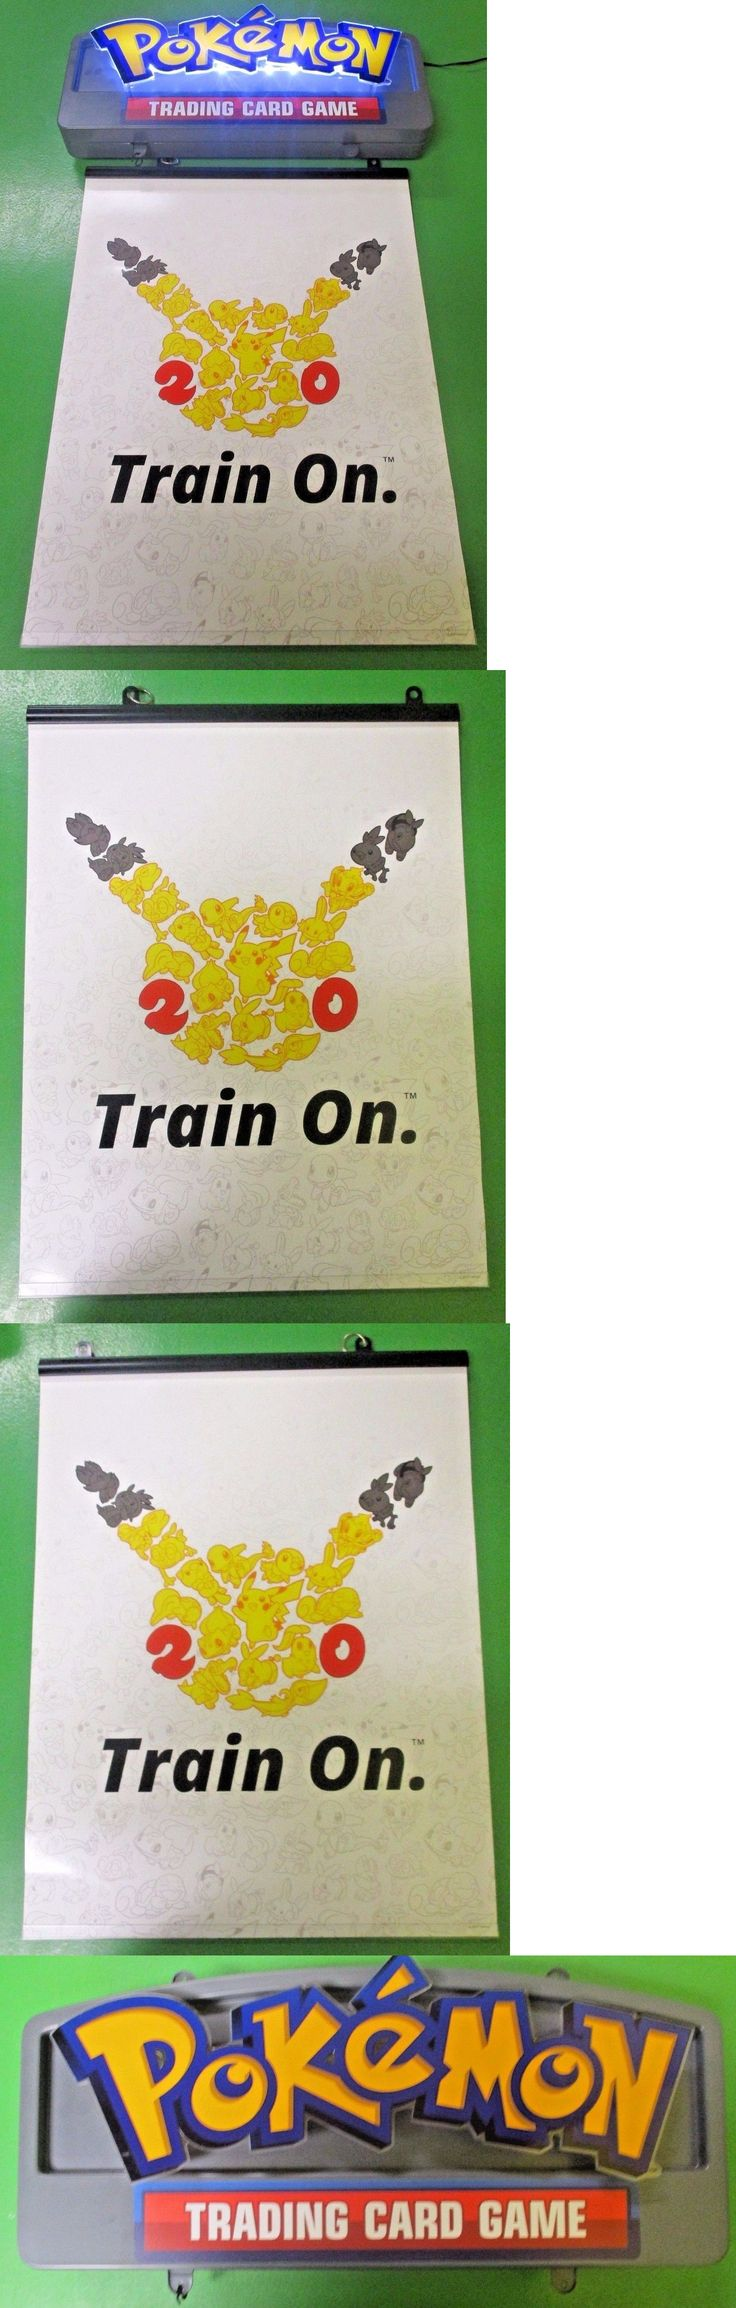 Other Pok mon TCG Items 2608: Pokemon Trading Card Game Train On Light Up Neon Retailer Sign -> BUY IT NOW ONLY: $199.99 on eBay!